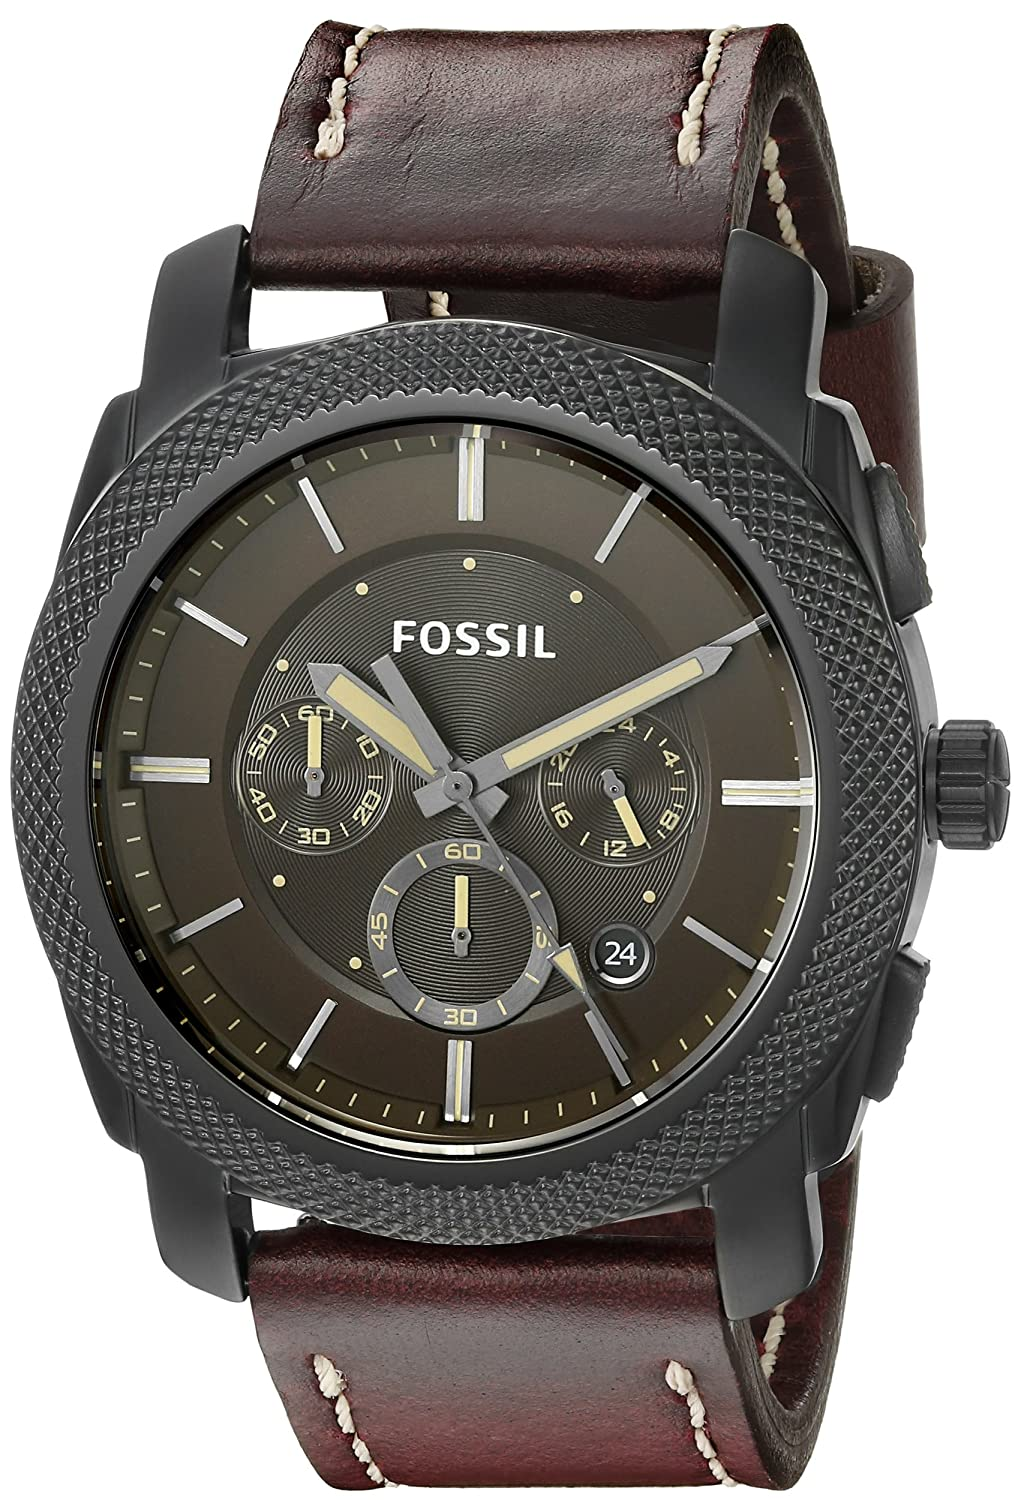 f11efa852b7 Amazon.com  Fossil Men s FS5121 Stainless Steel Watch With Brown Leather  Band  Watches